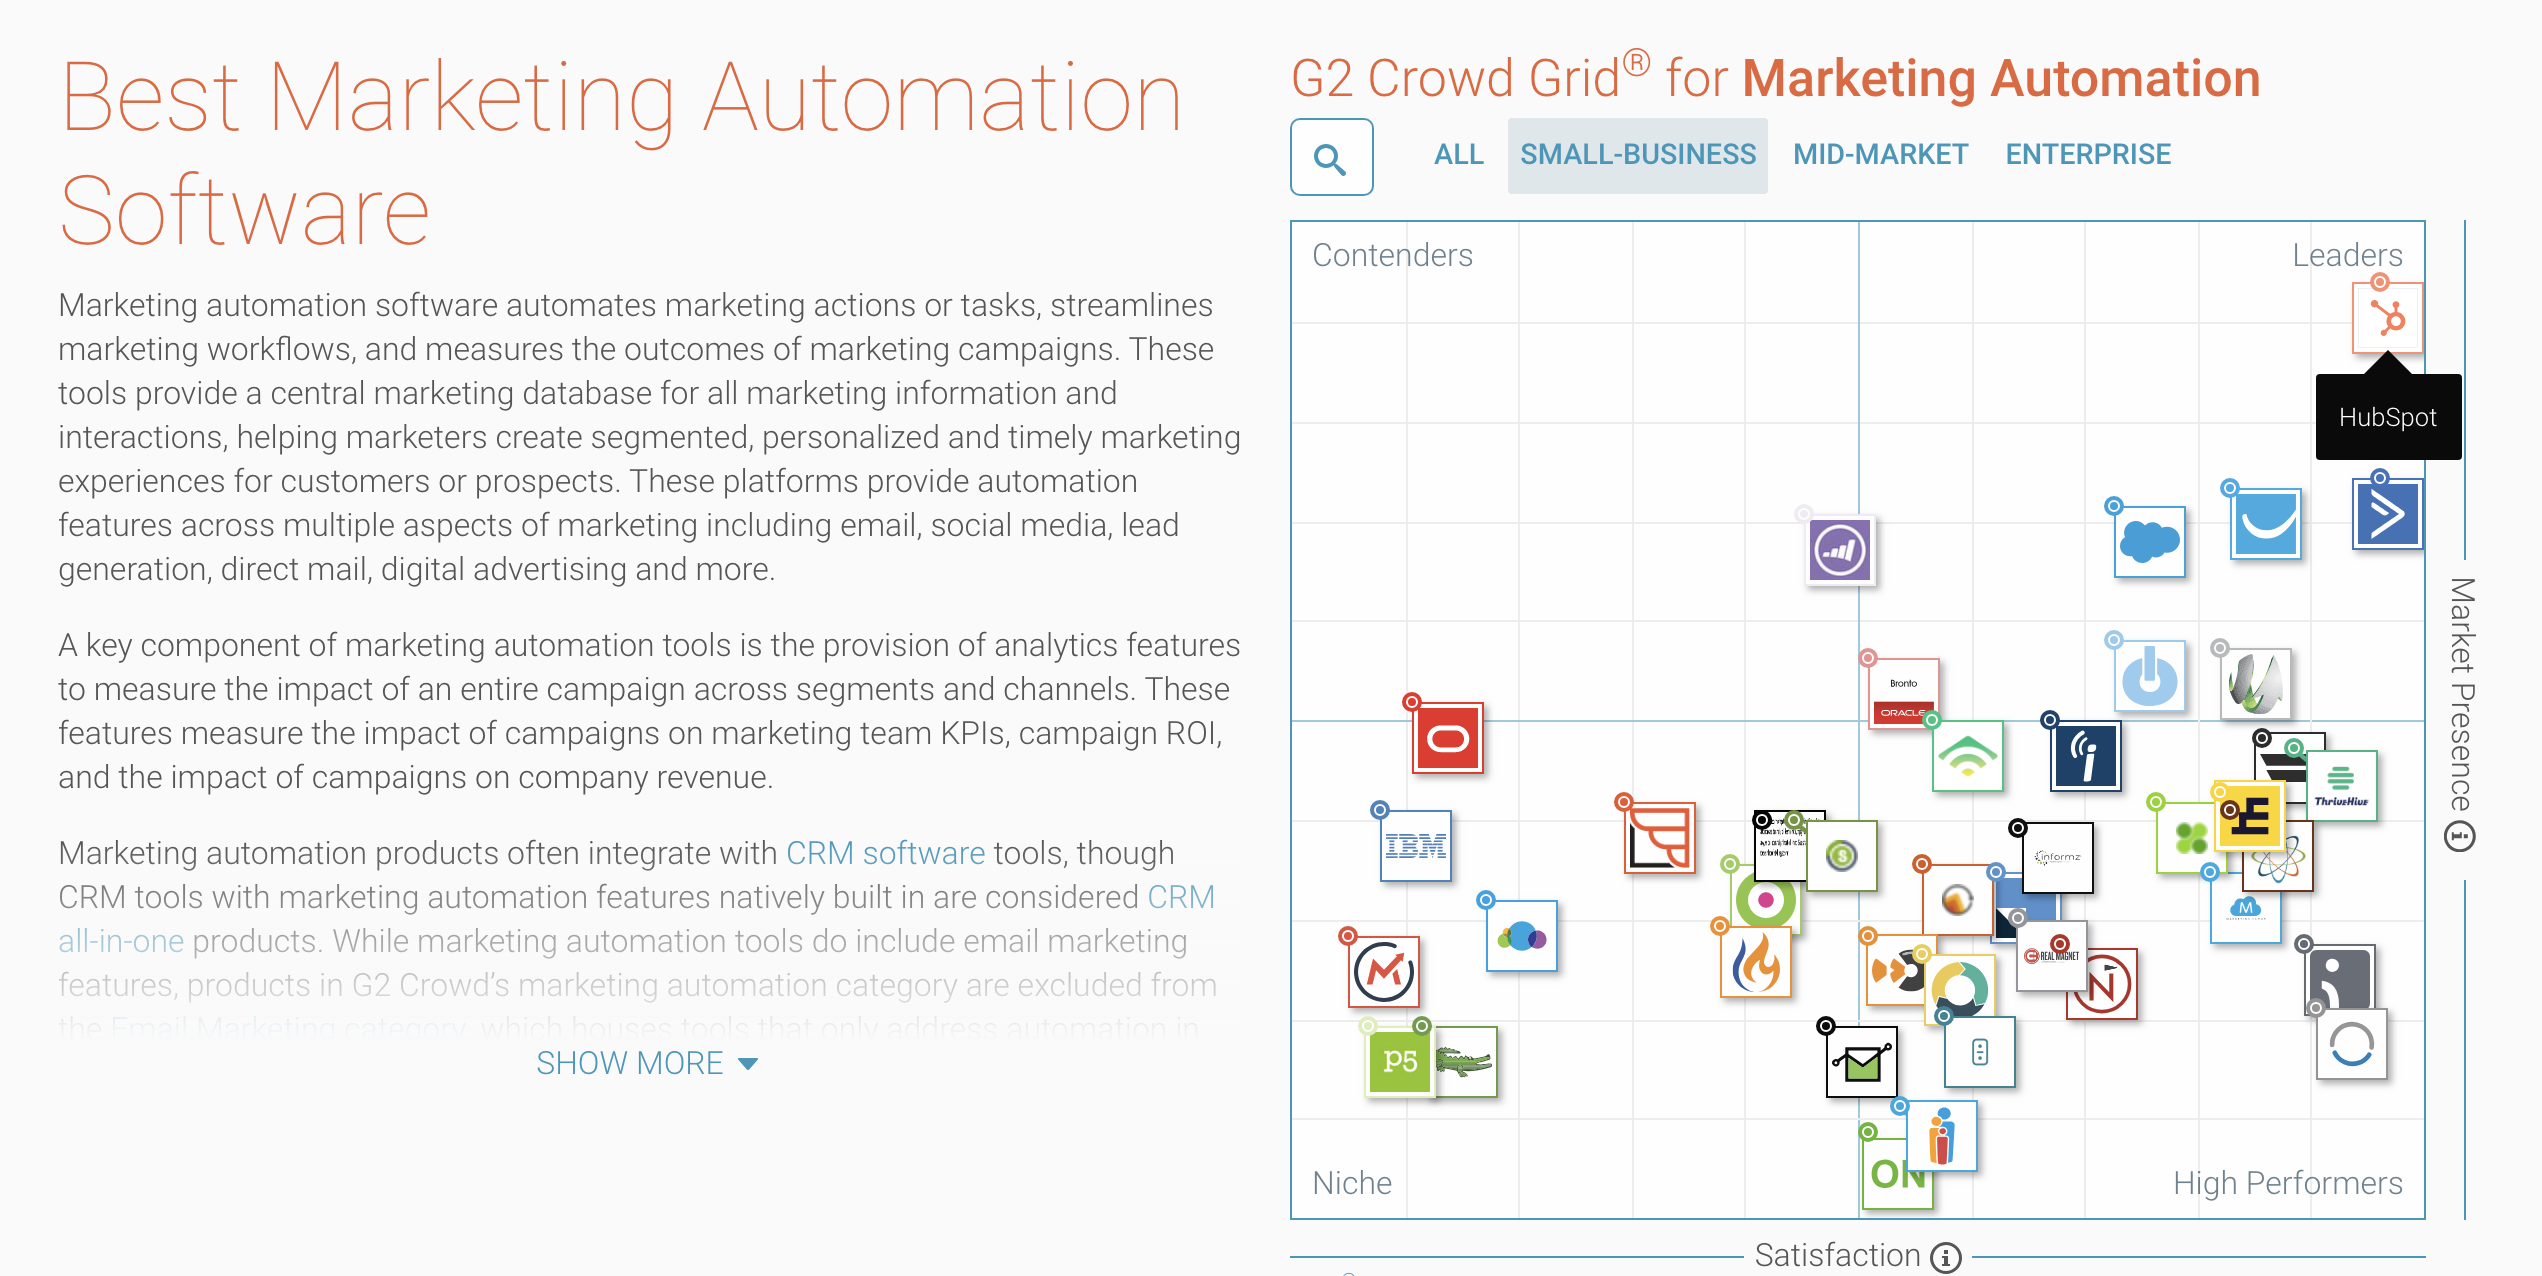 beste marketing automation voor small business